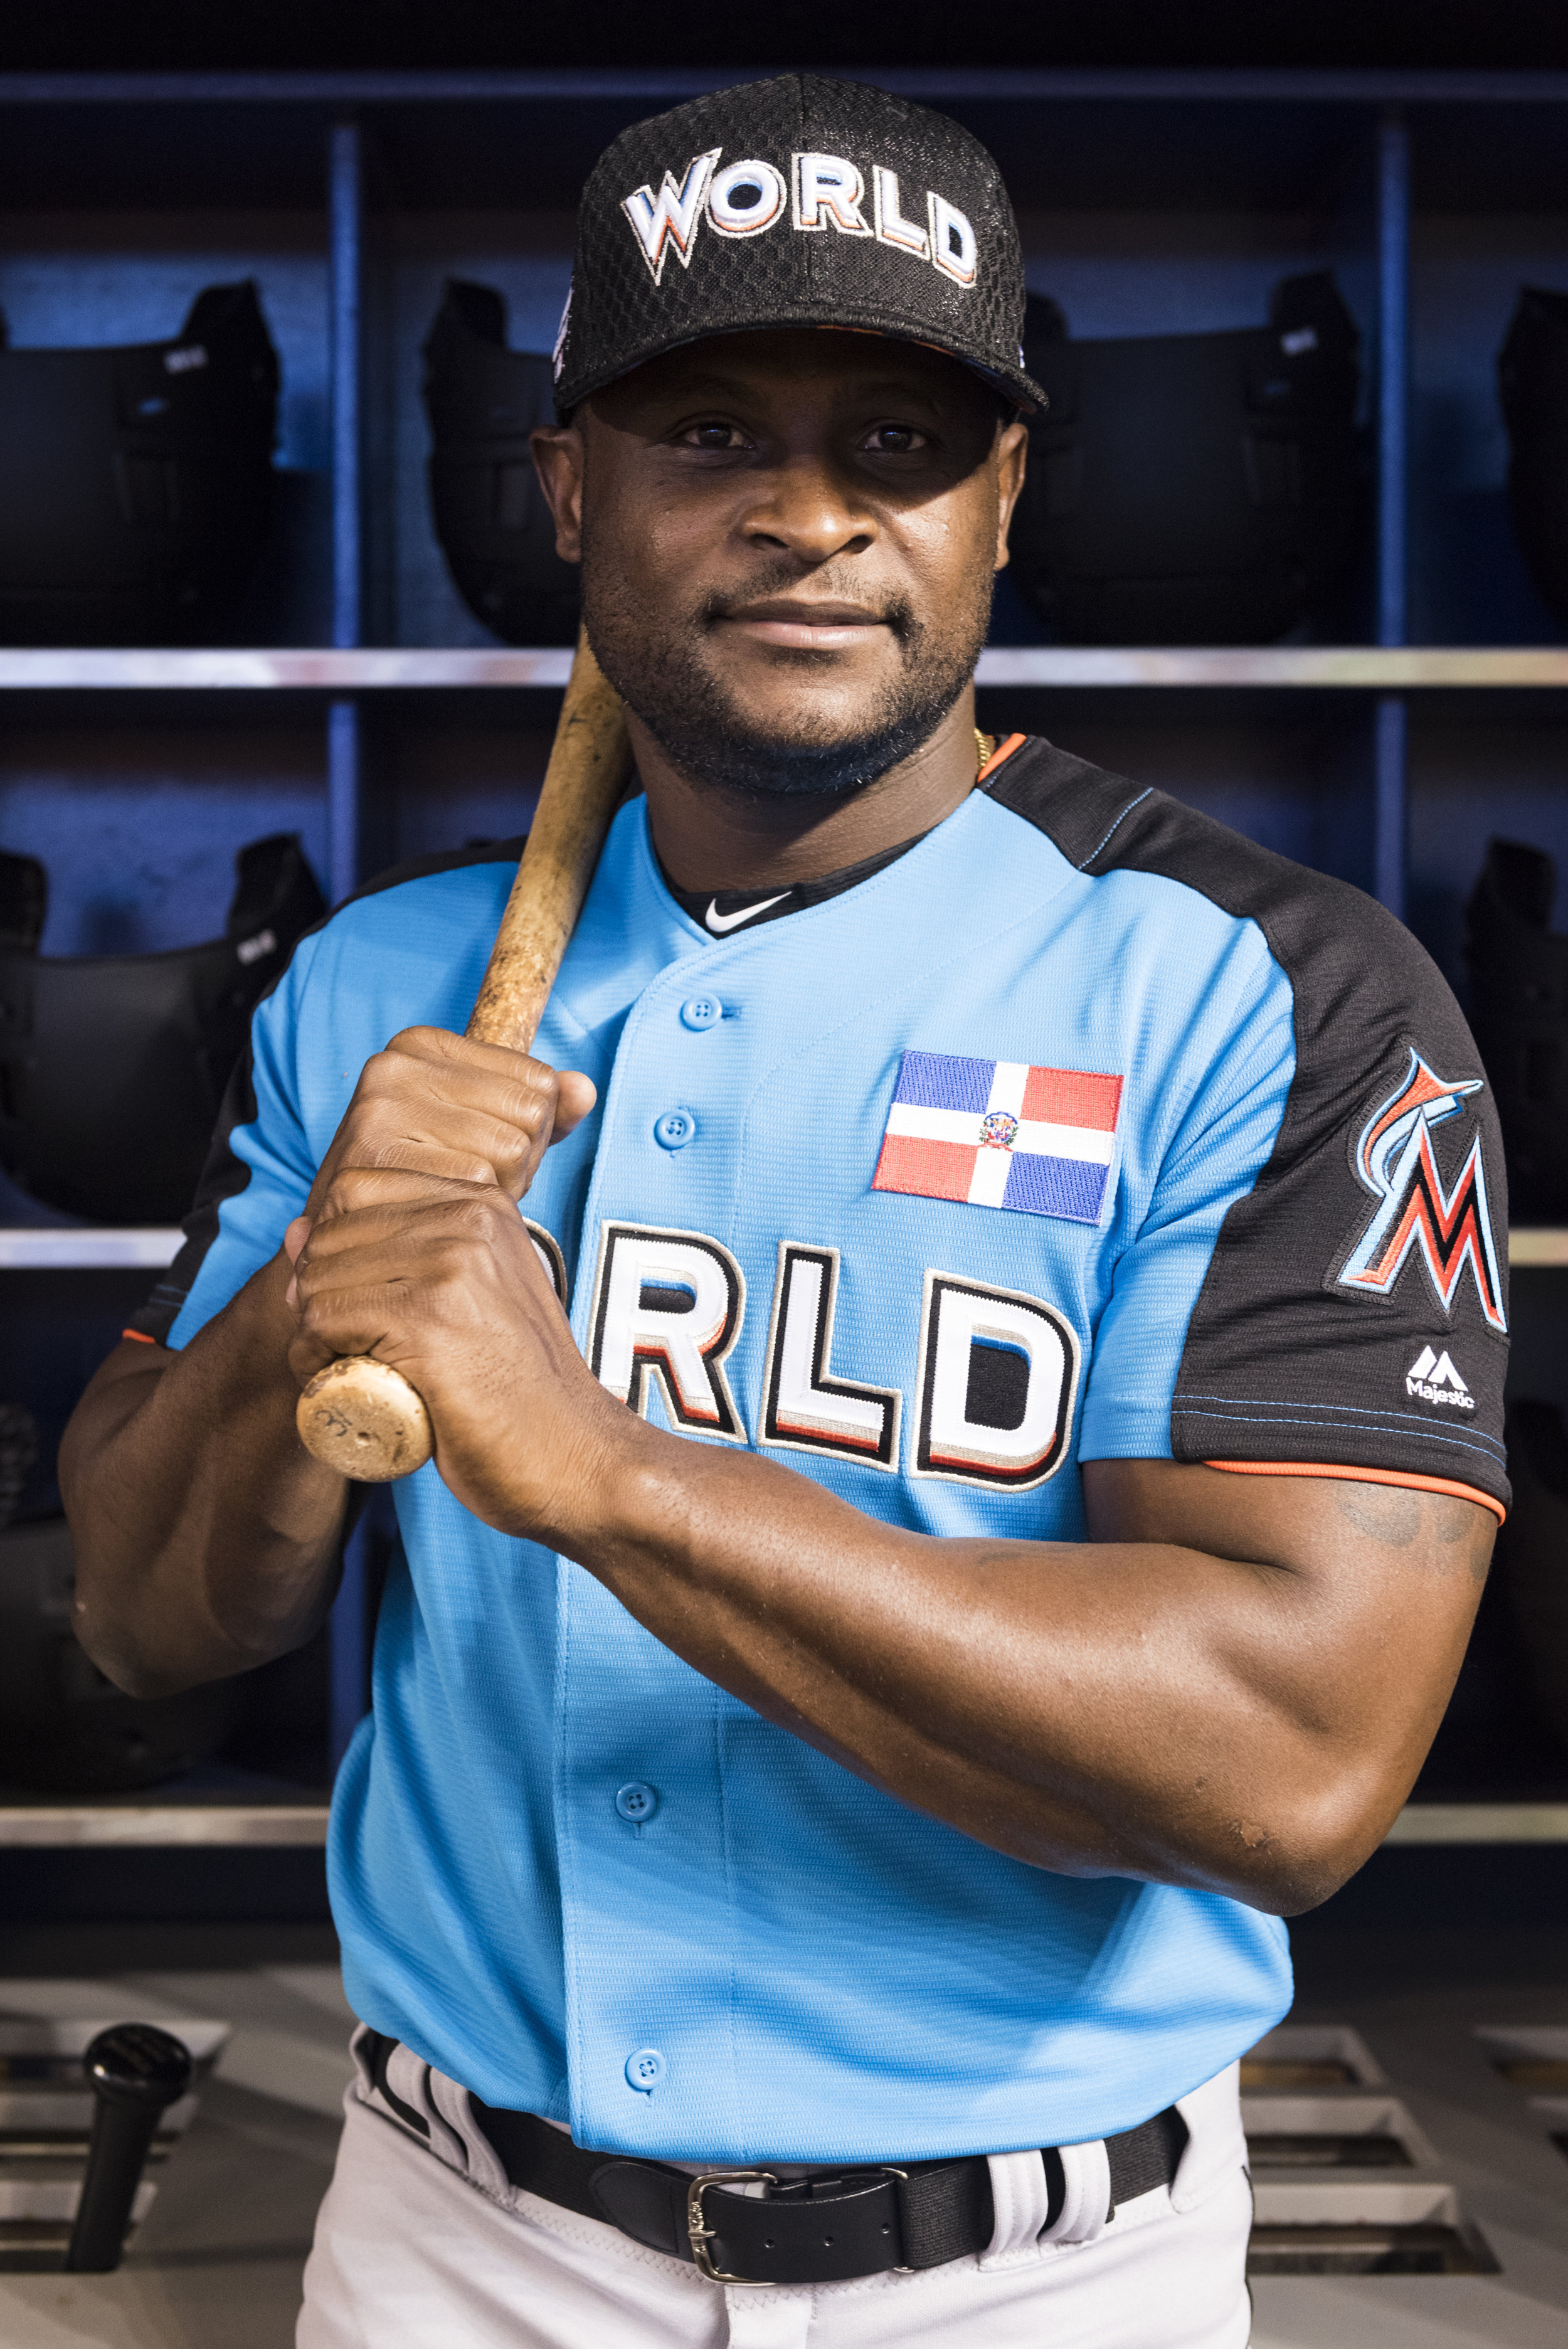 Luis Castillo, Miami Marlins